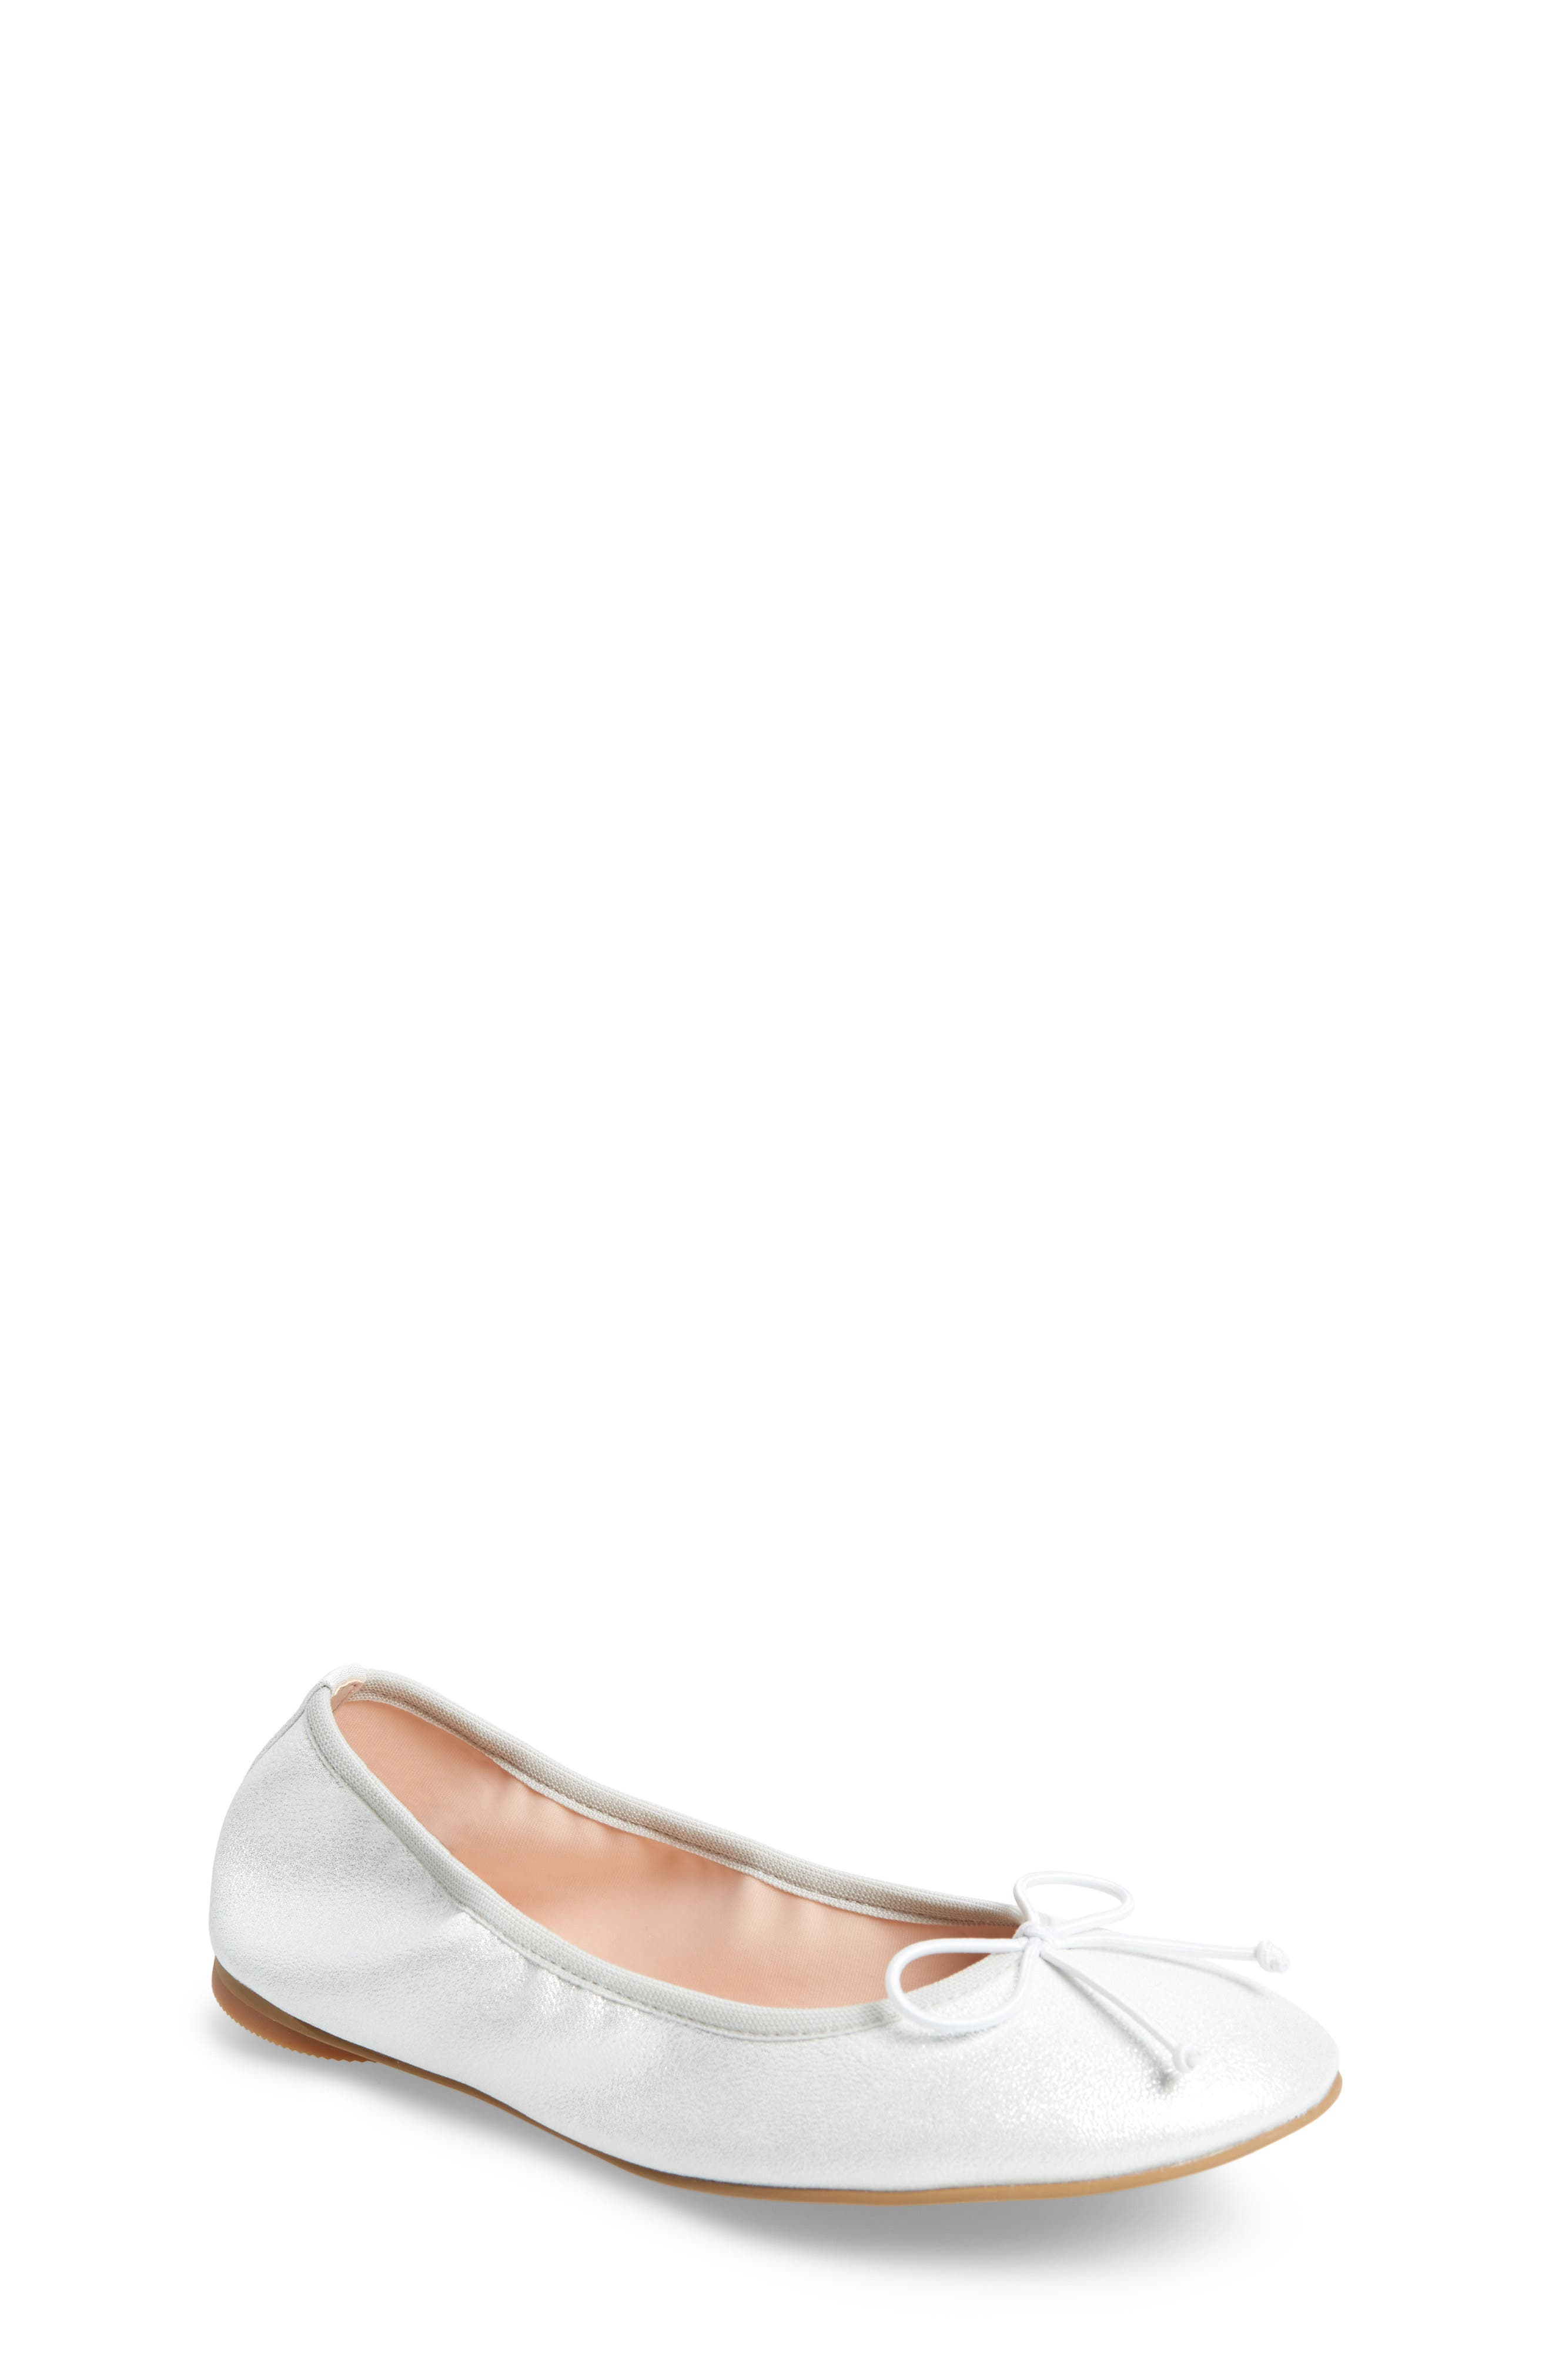 Bella Ballet Flat,                             Main thumbnail 1, color,                             Silver Shimmer Faux Leather